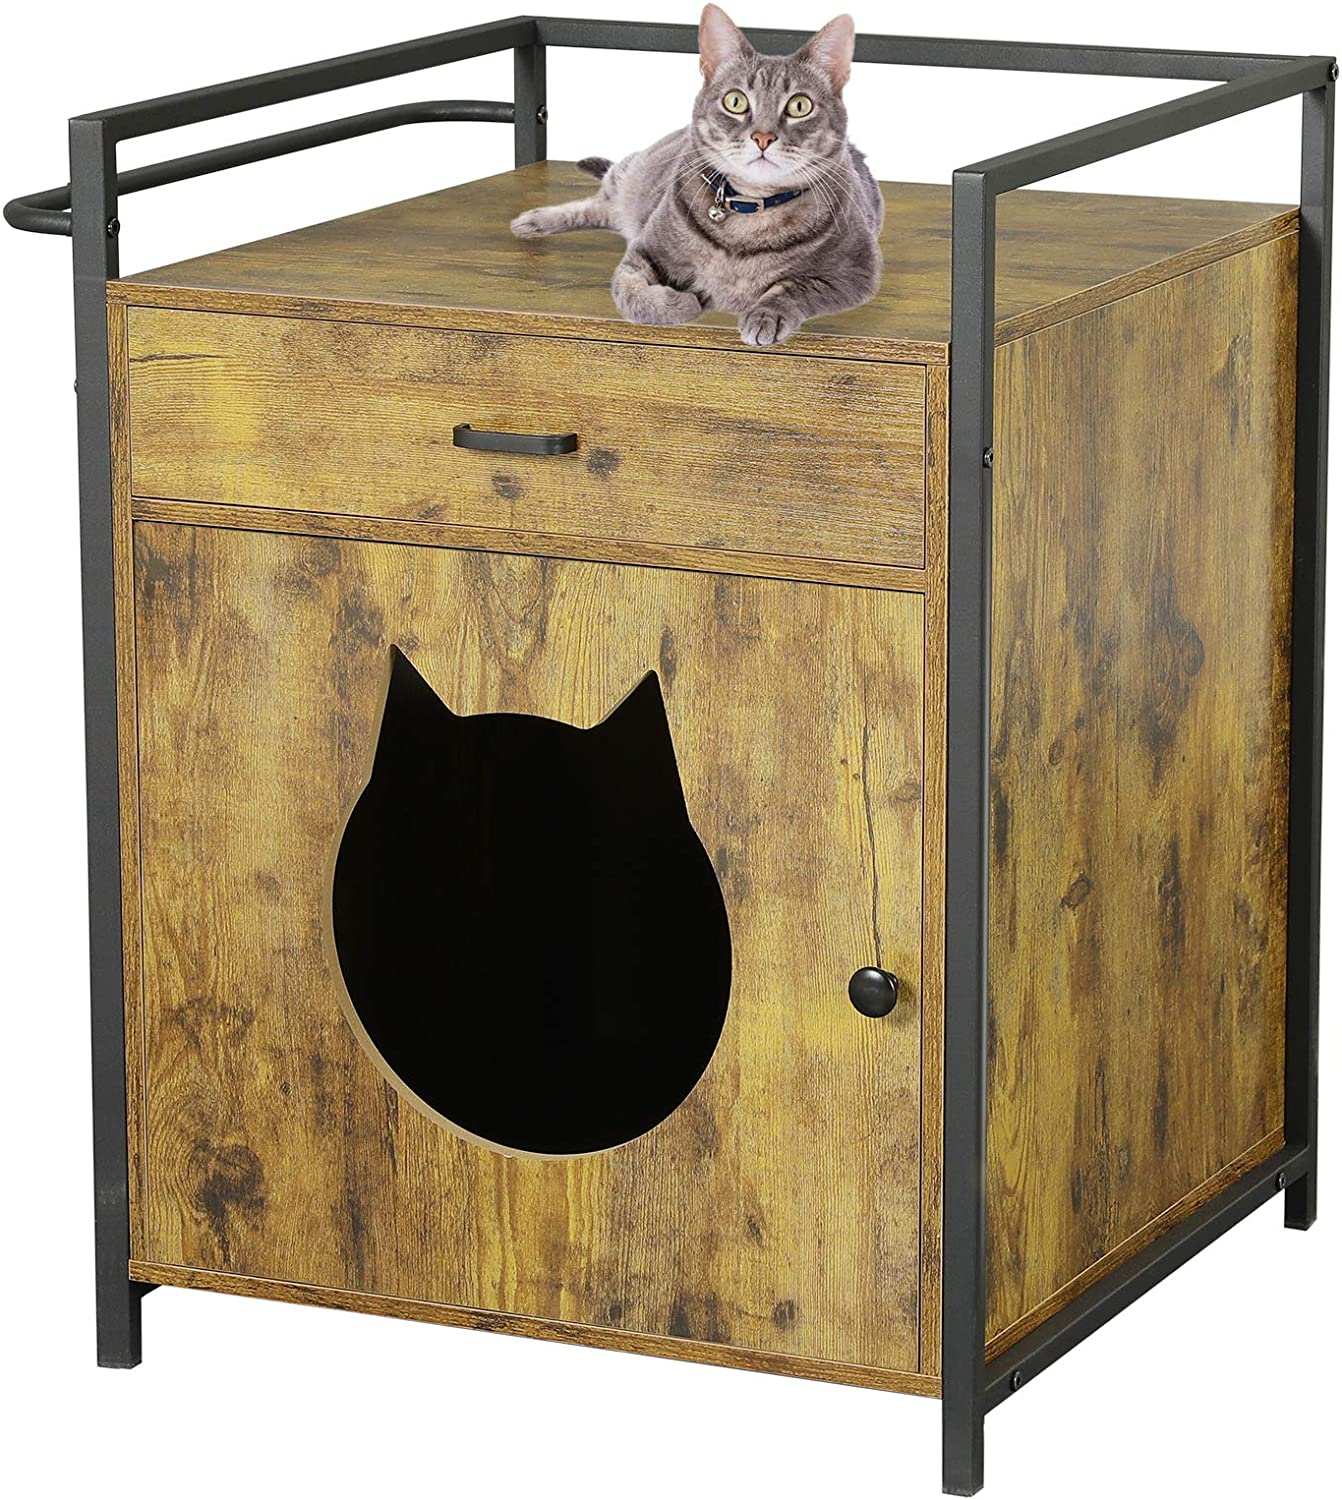 MSmask Large Cat Litter Box Enclosure with Storage Drawer, Hidden Litter Tray Furniture, Privacy Cat Washroom Bench, Pet Crate Washroom House Nightstand with Iron and Wood Sturdy Structure